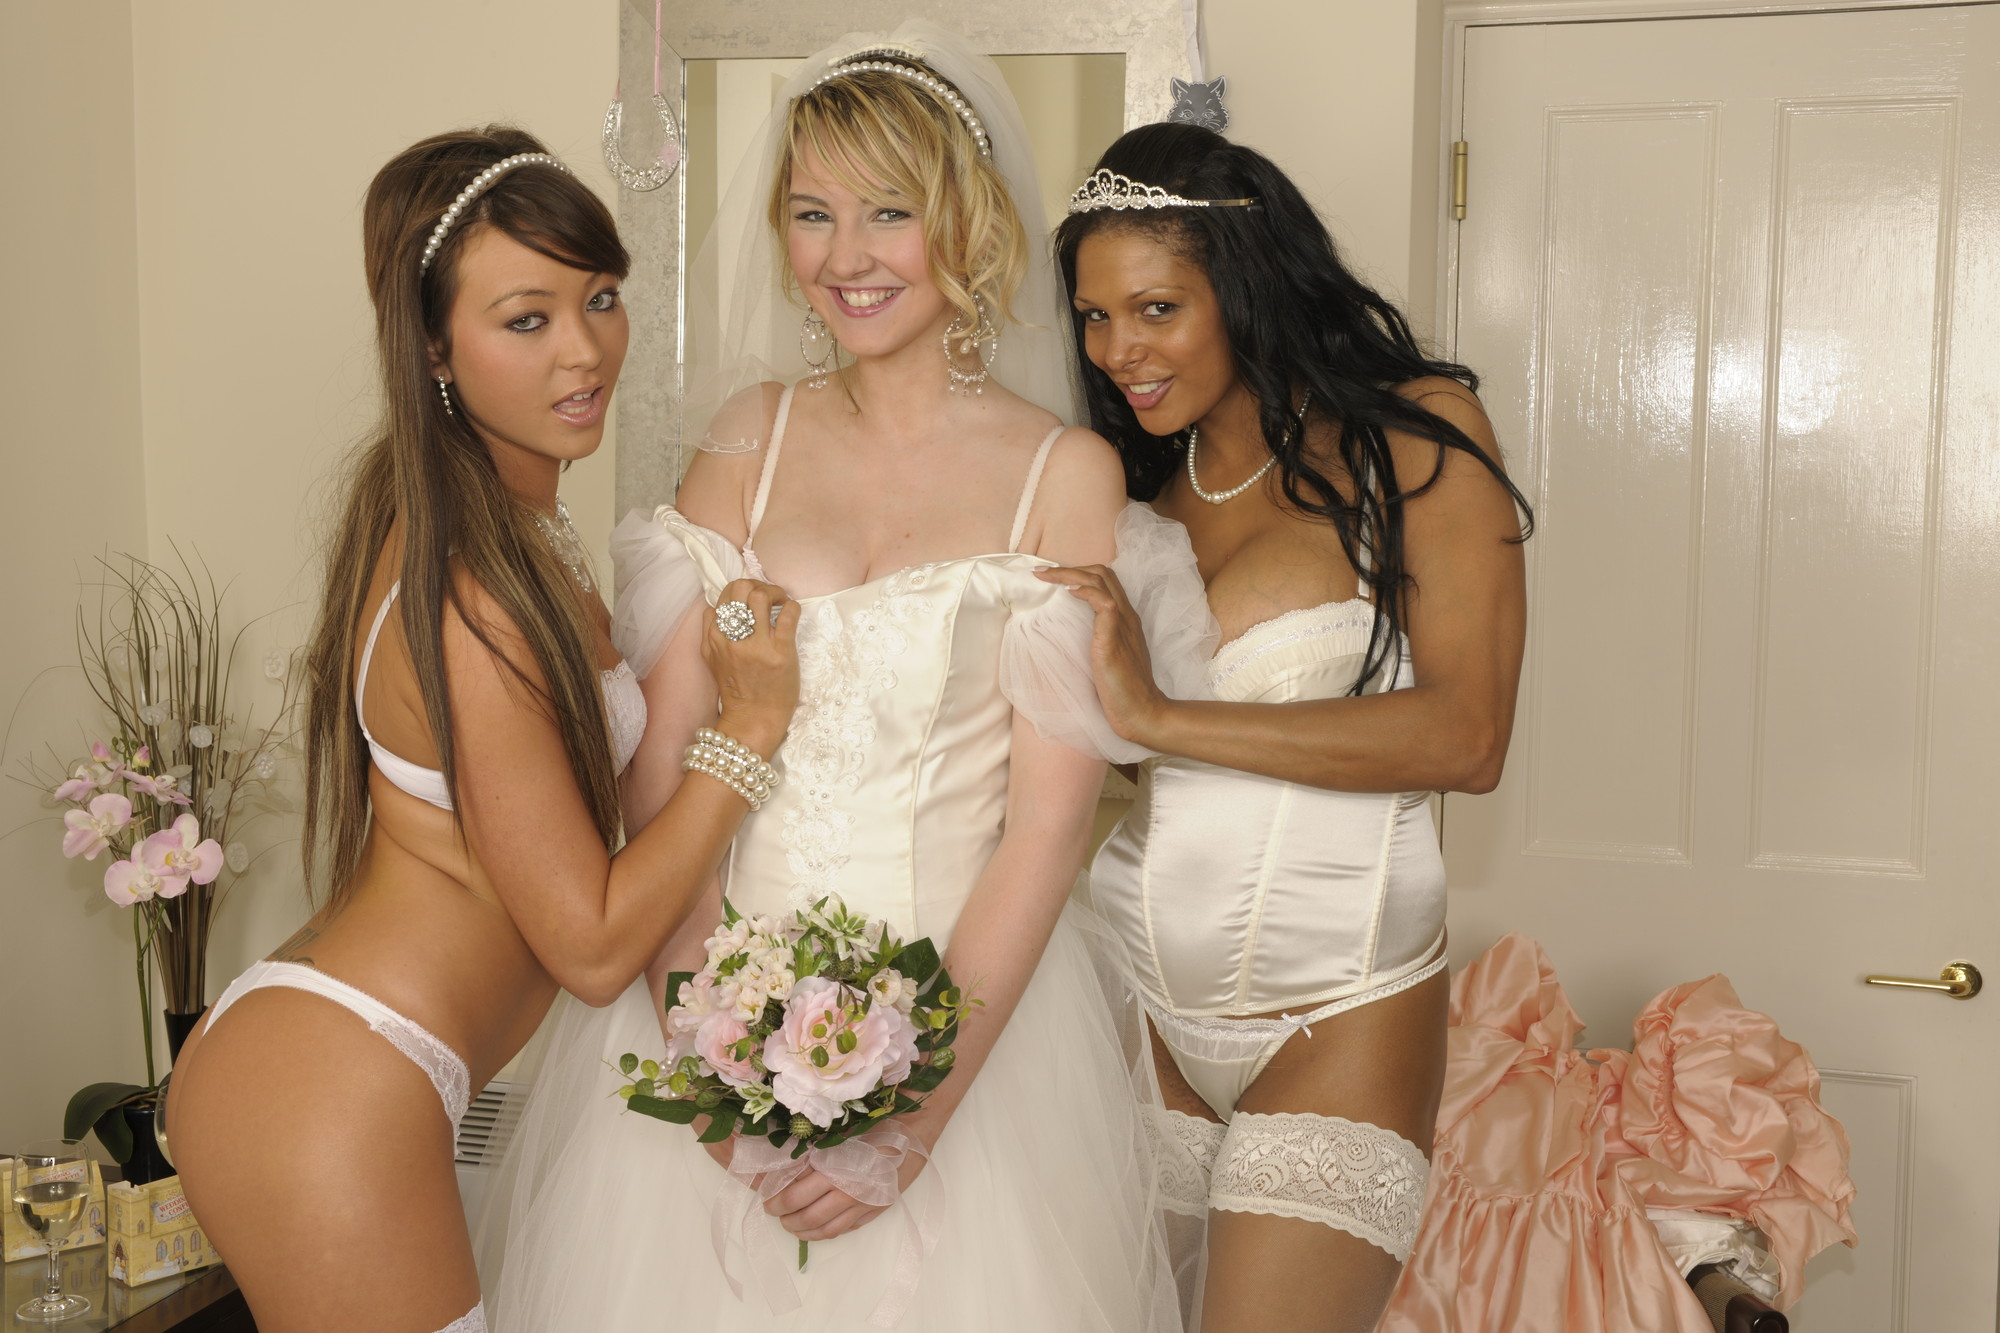 Naughty bride with friends will fuck your brain out 4